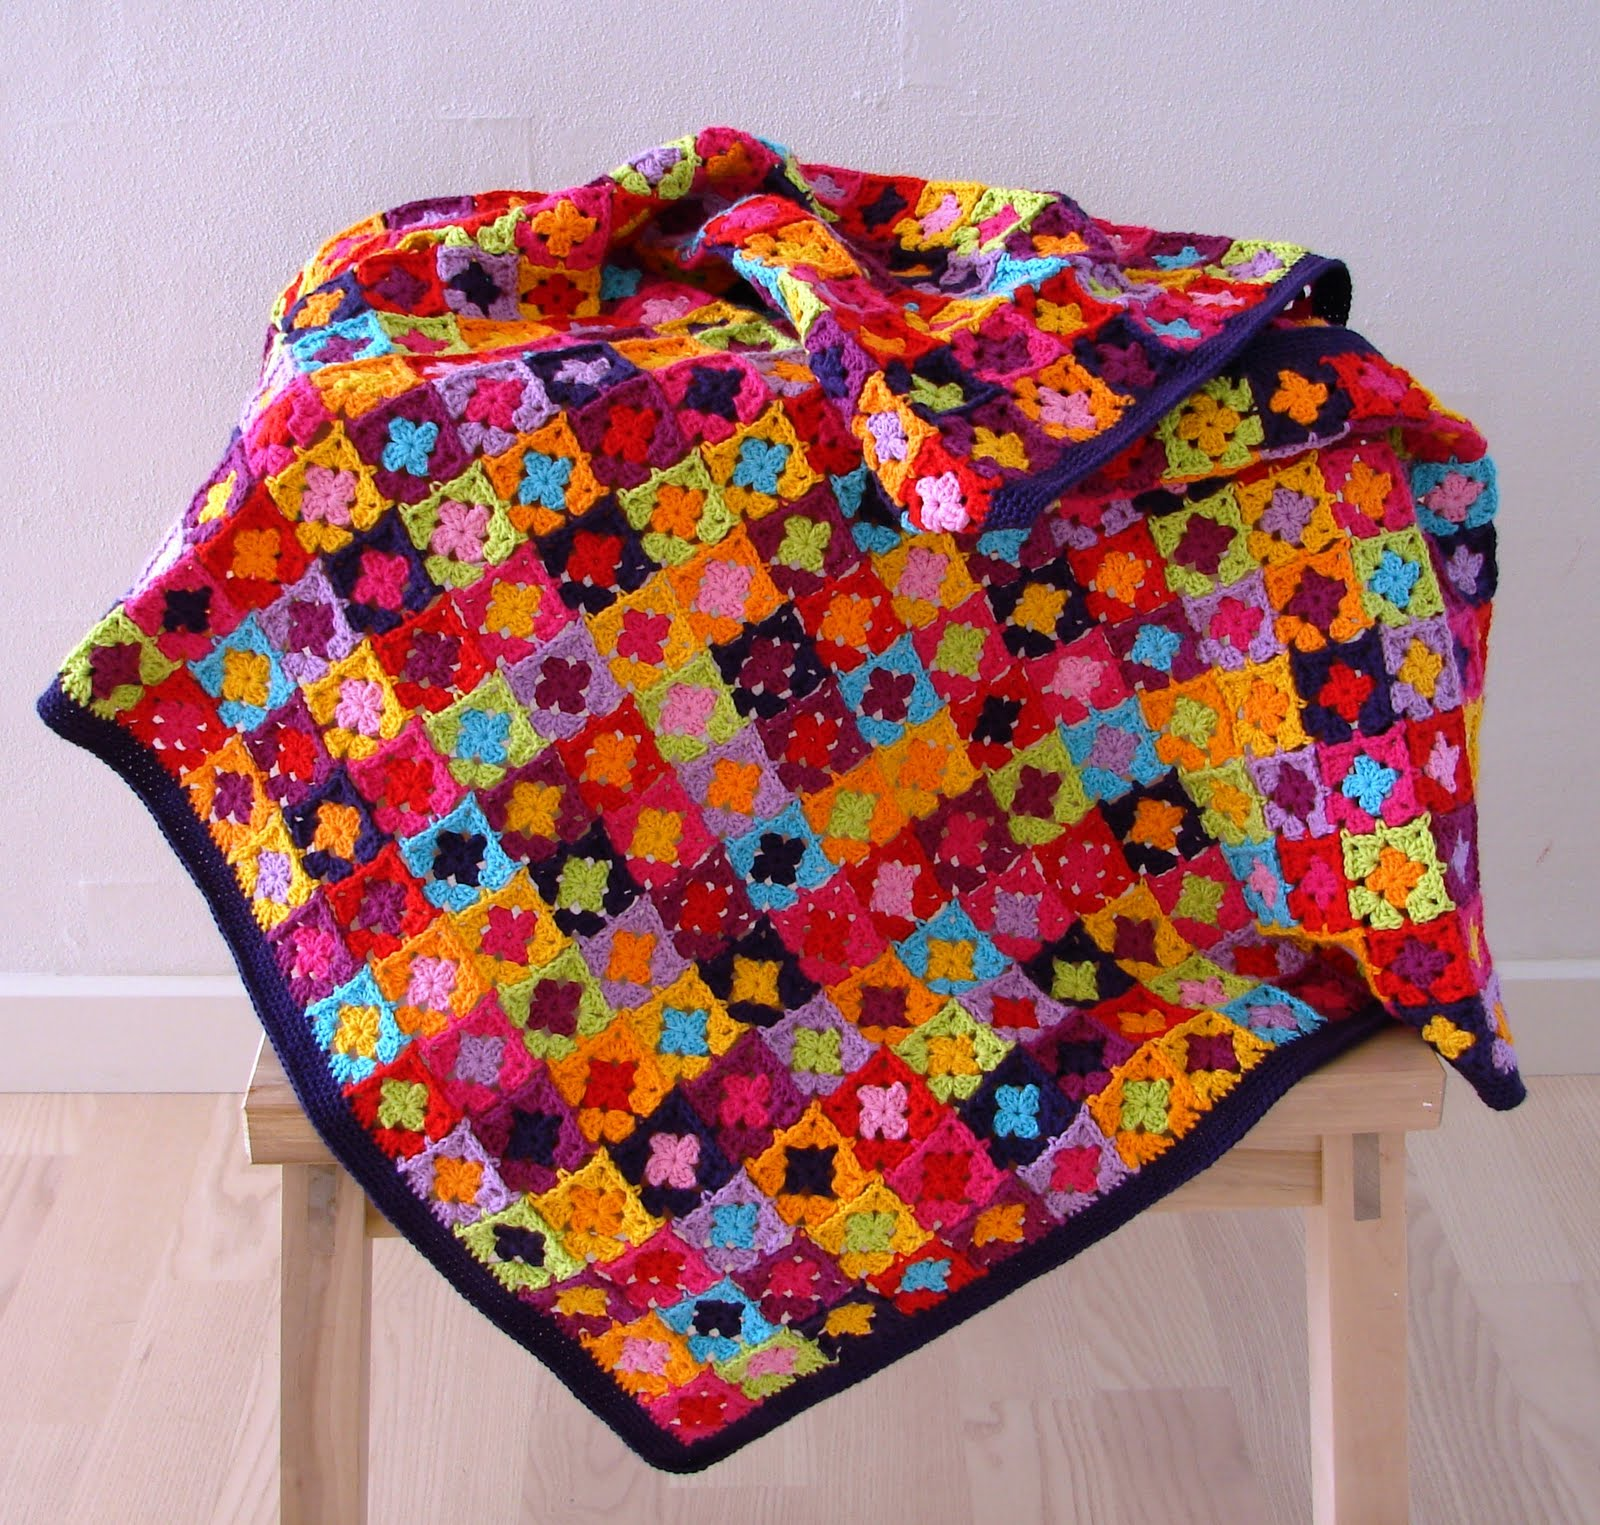 Knitting Patterns Crochet Baby Blanket